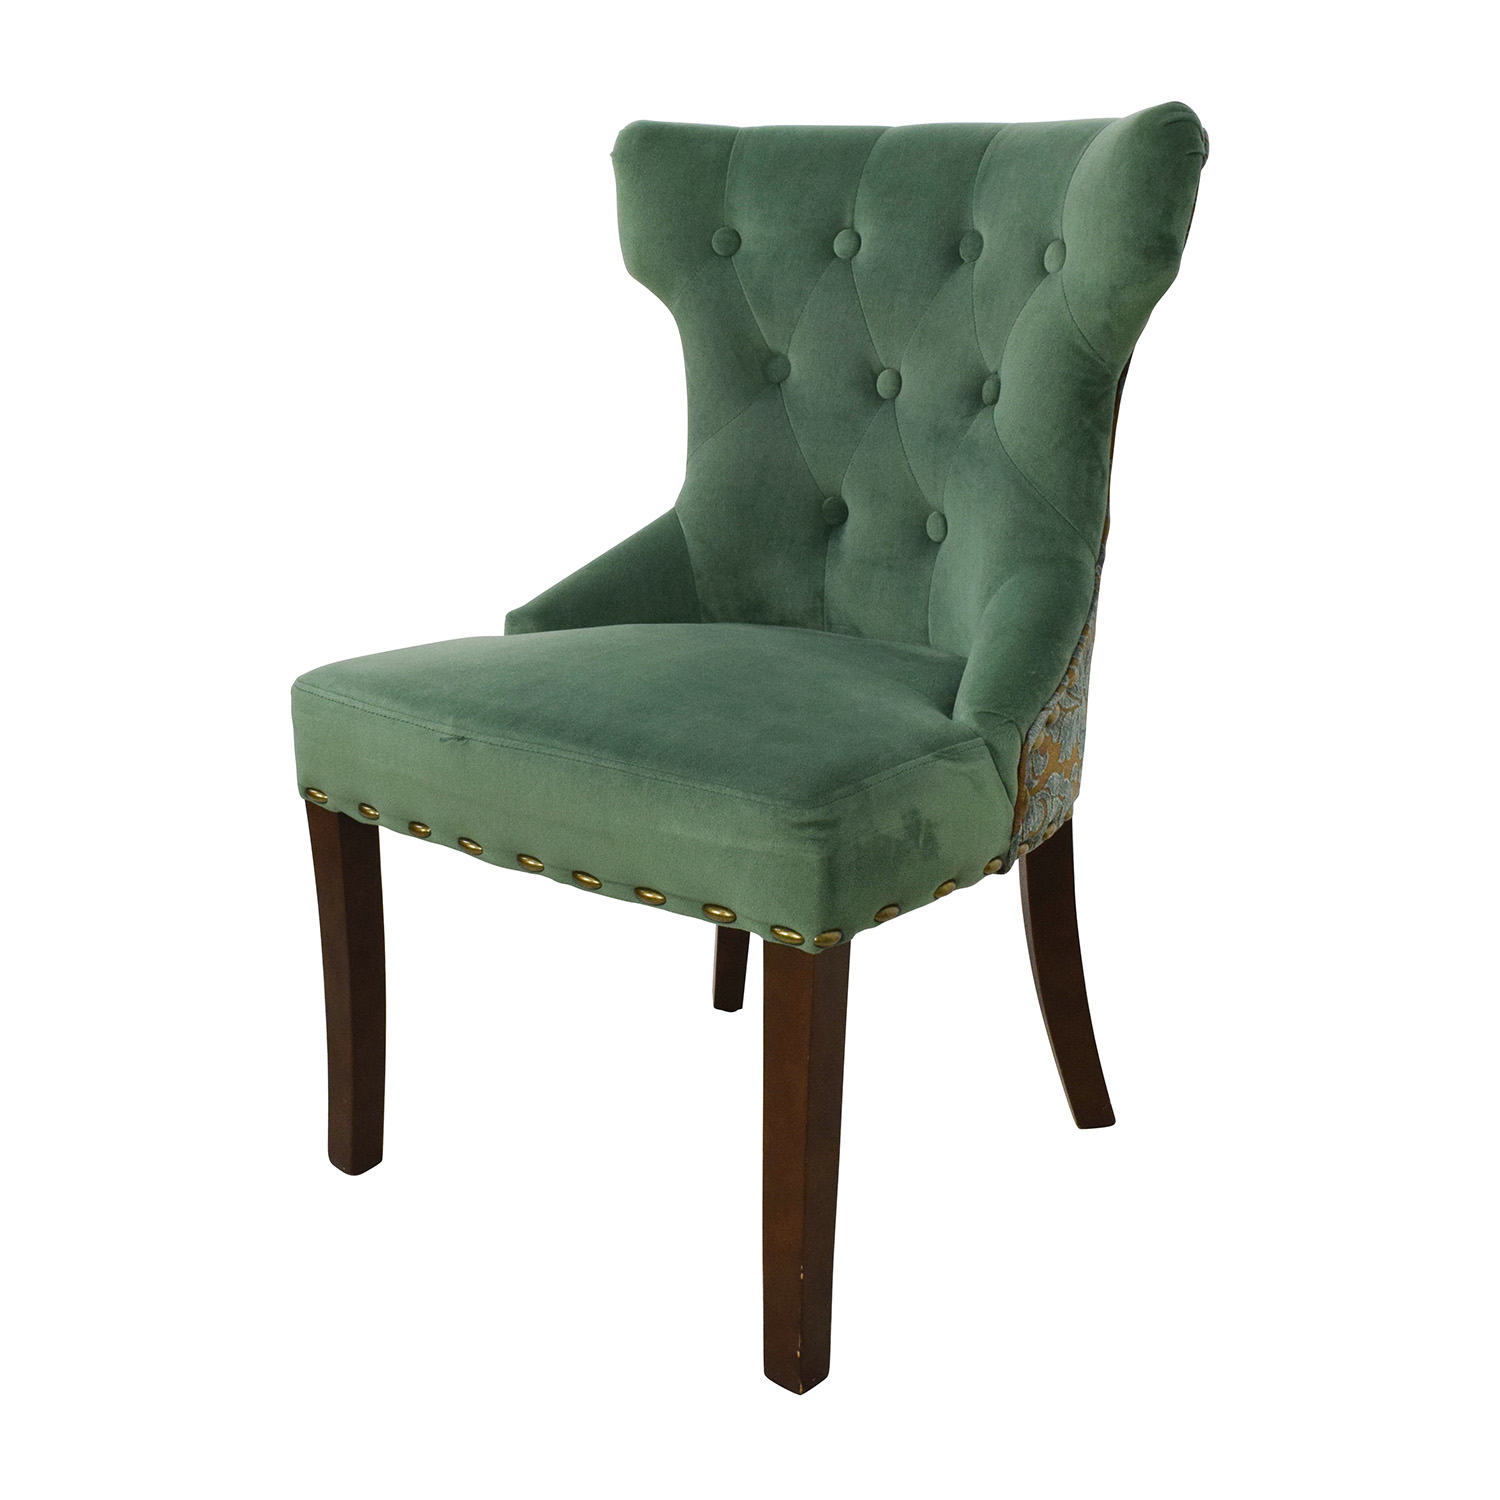 pier 1 imports hourglass dining chair inspirational interior style rh myhomedesign 000webhostapp com